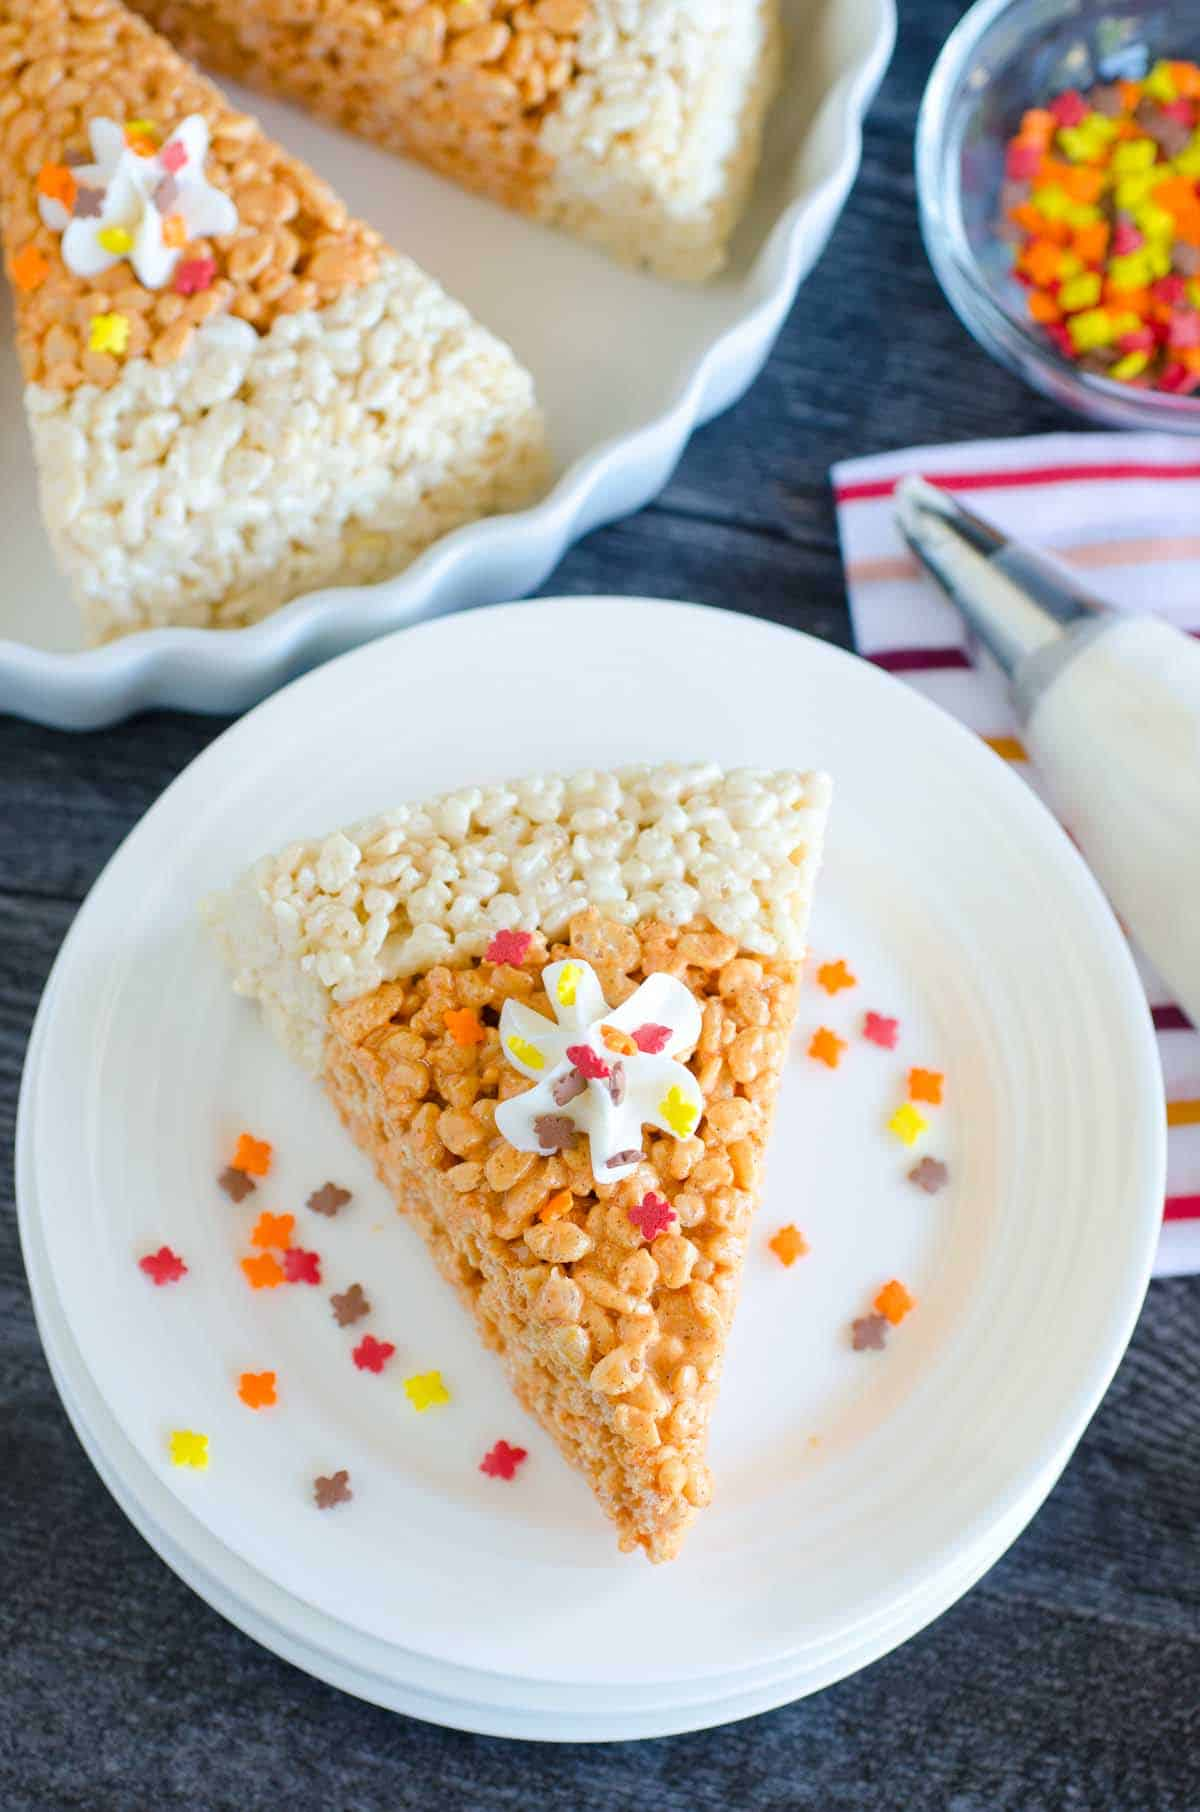 rice krispies treat that looks like a slice of pumpkin pie with frosting and sprinkles